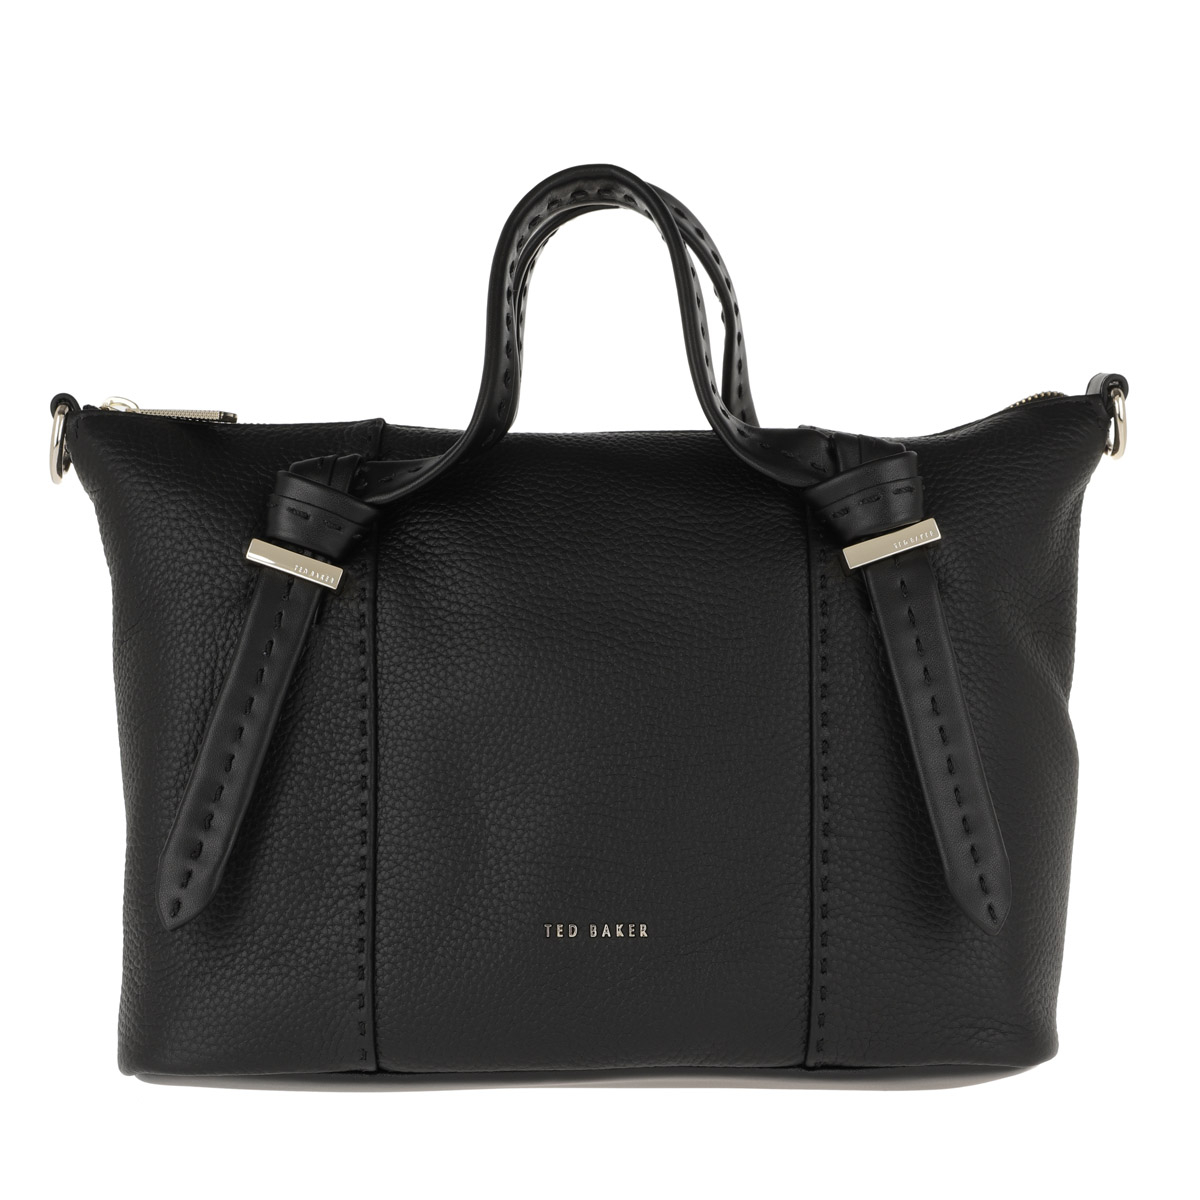 Ted Baker Tote - Olmia Knotted Handle Small Tote Black - in schwarz - für Damen